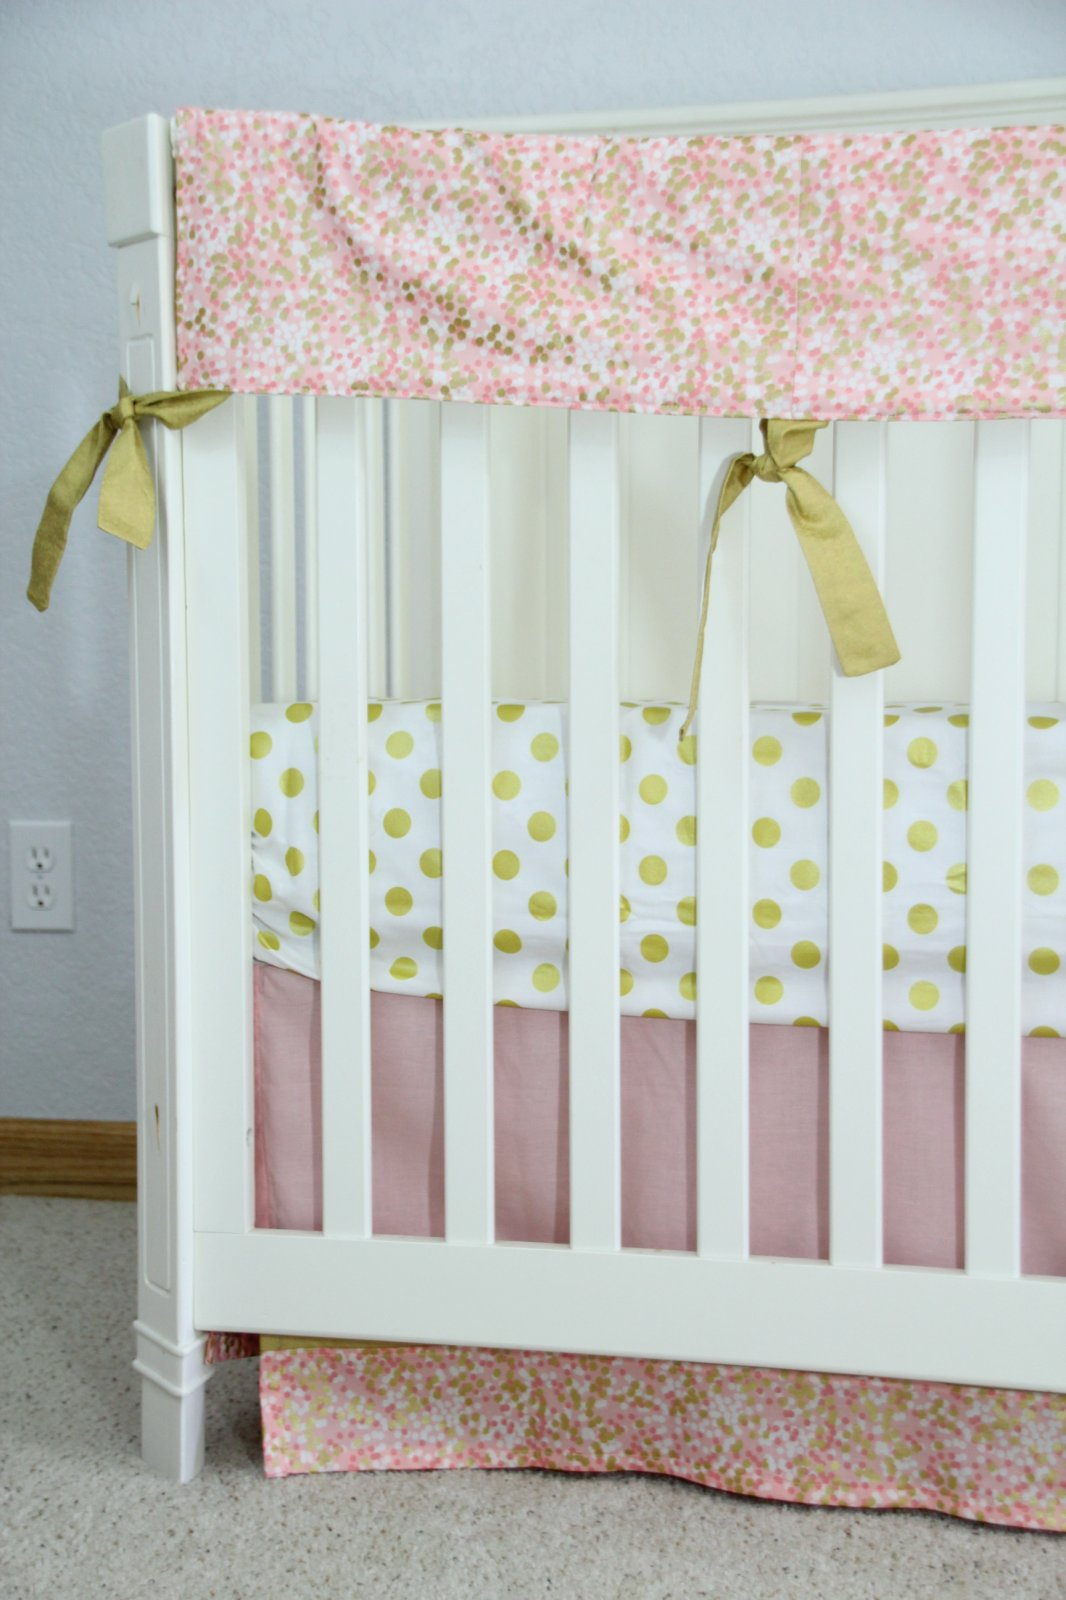 The Eloise Collection - Blush Pink, Peach, Coral and Metallic Gold Custom Crib Bedding Set